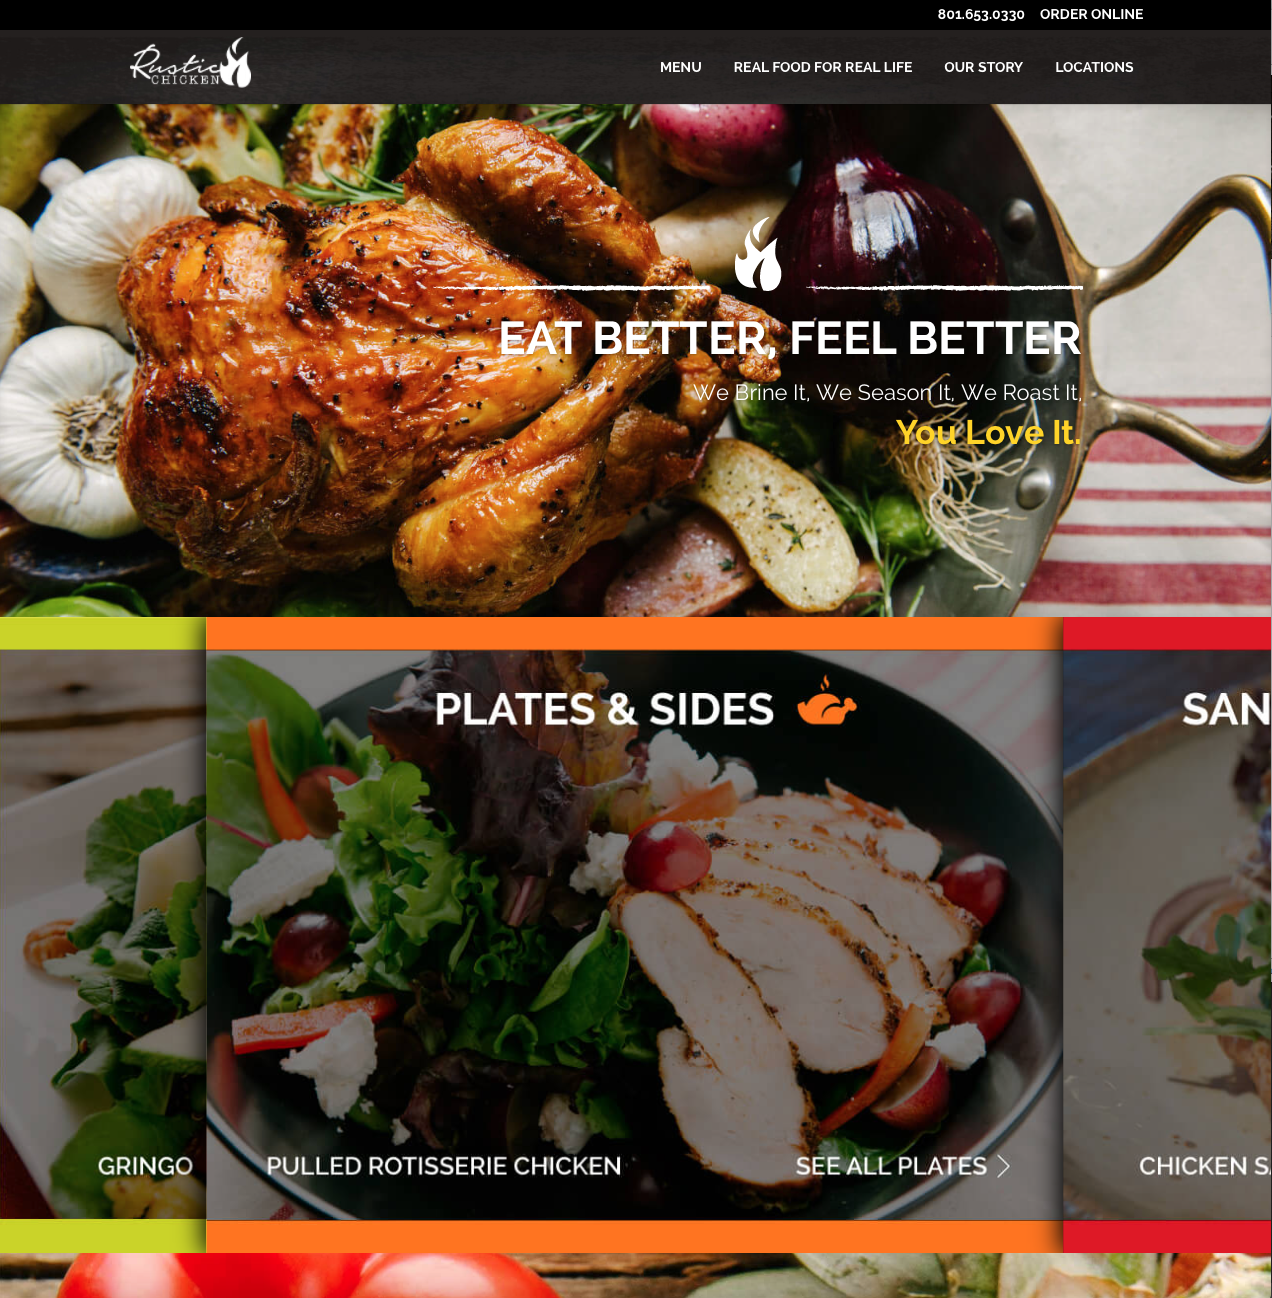 Rustic Chicken Home Page